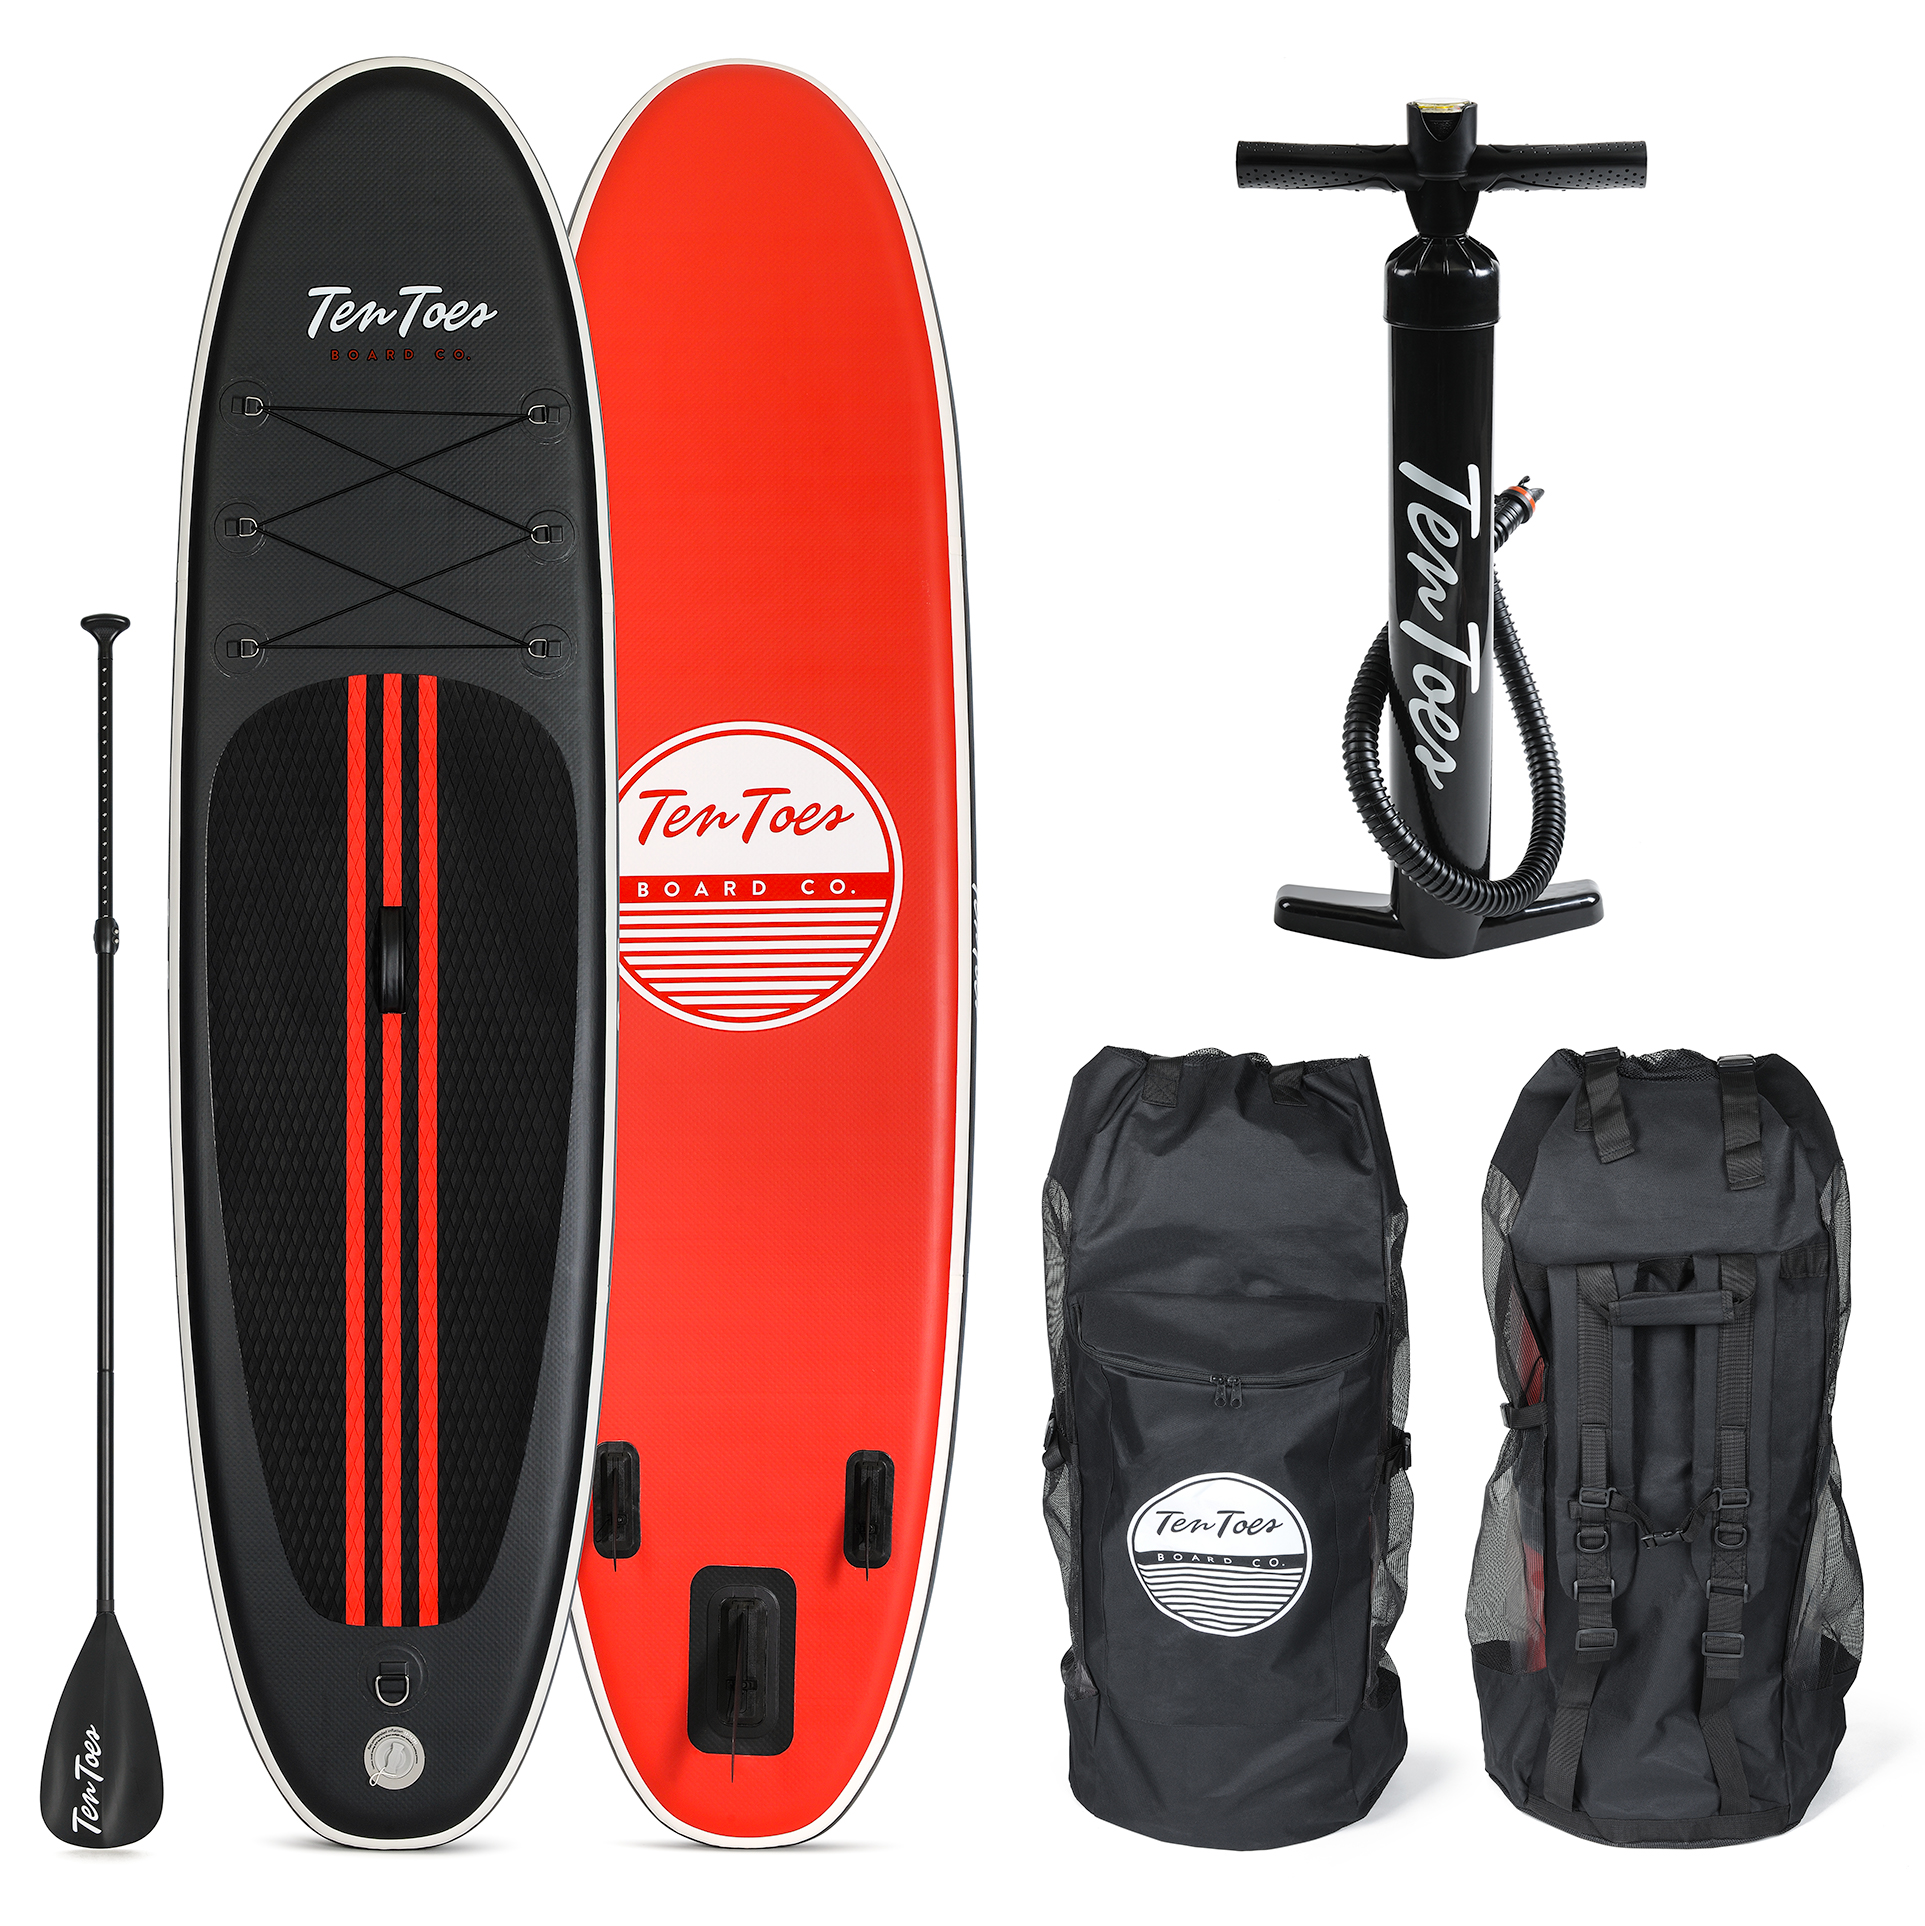 Ten Toes Weekender Inflatable Stand Up Paddle Board Bundle, 10'